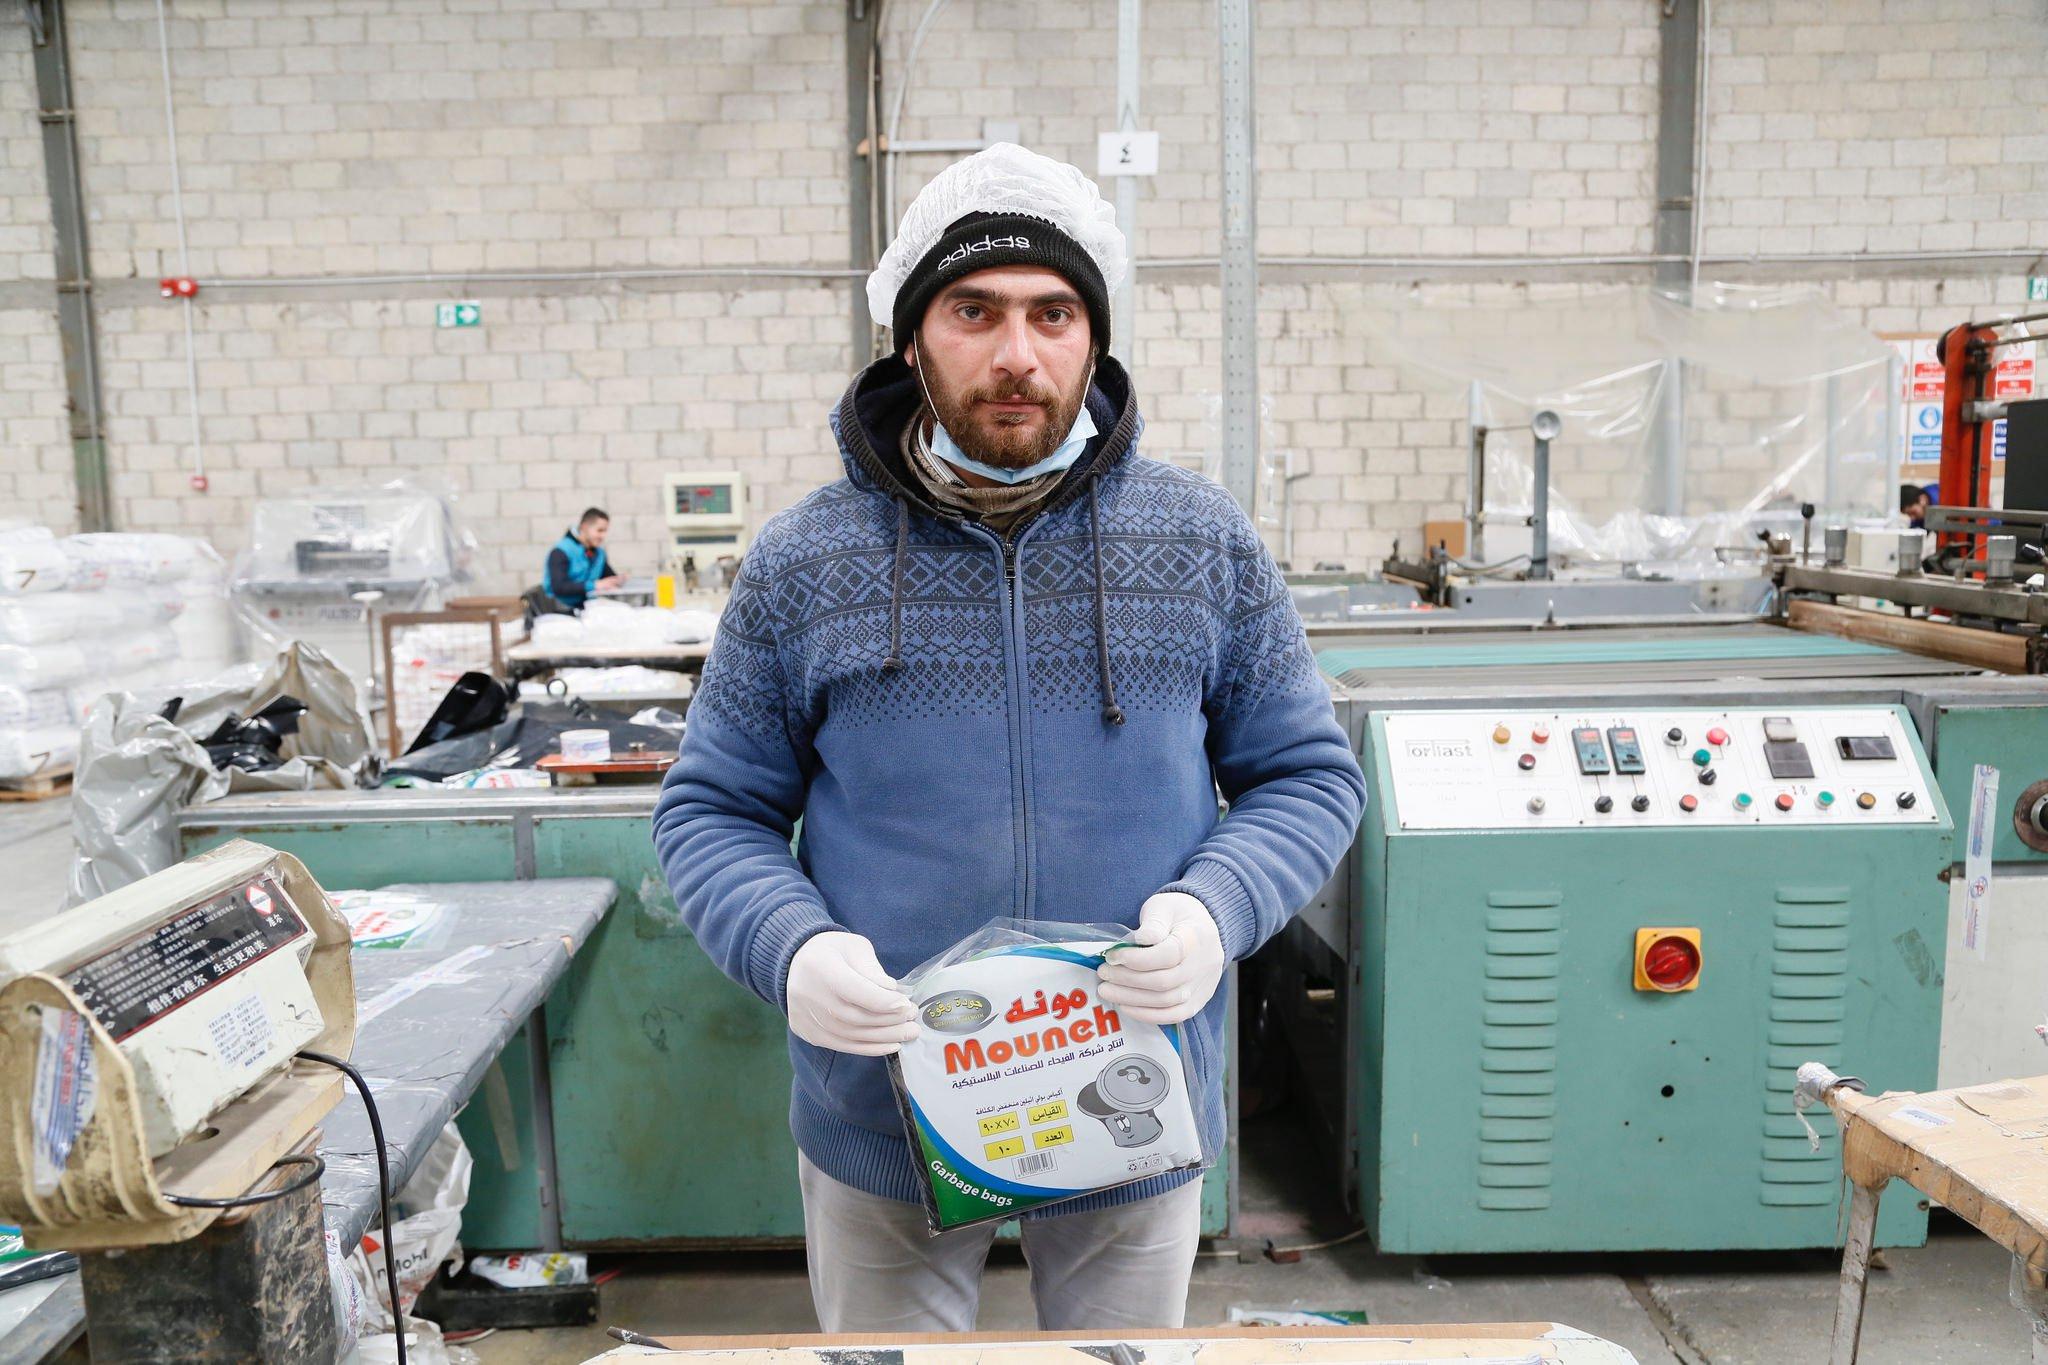 Amer, from Aleppo, Syria, now working in a plastics packaging factory in Amman, Jordan © DFID, 2017